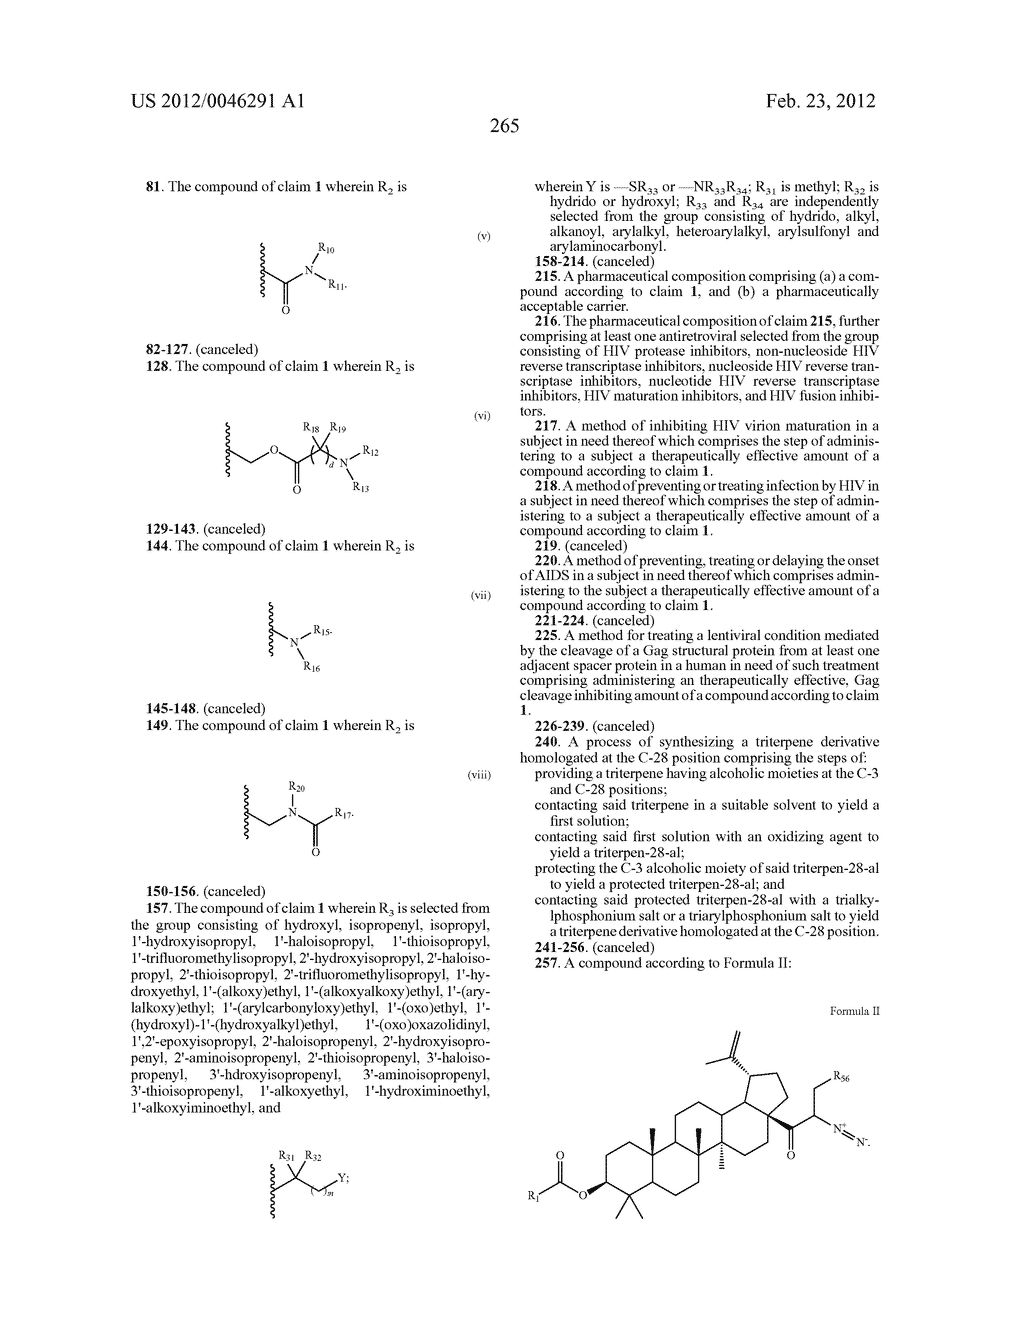 Extended Triterpene Derivatives - diagram, schematic, and image 265